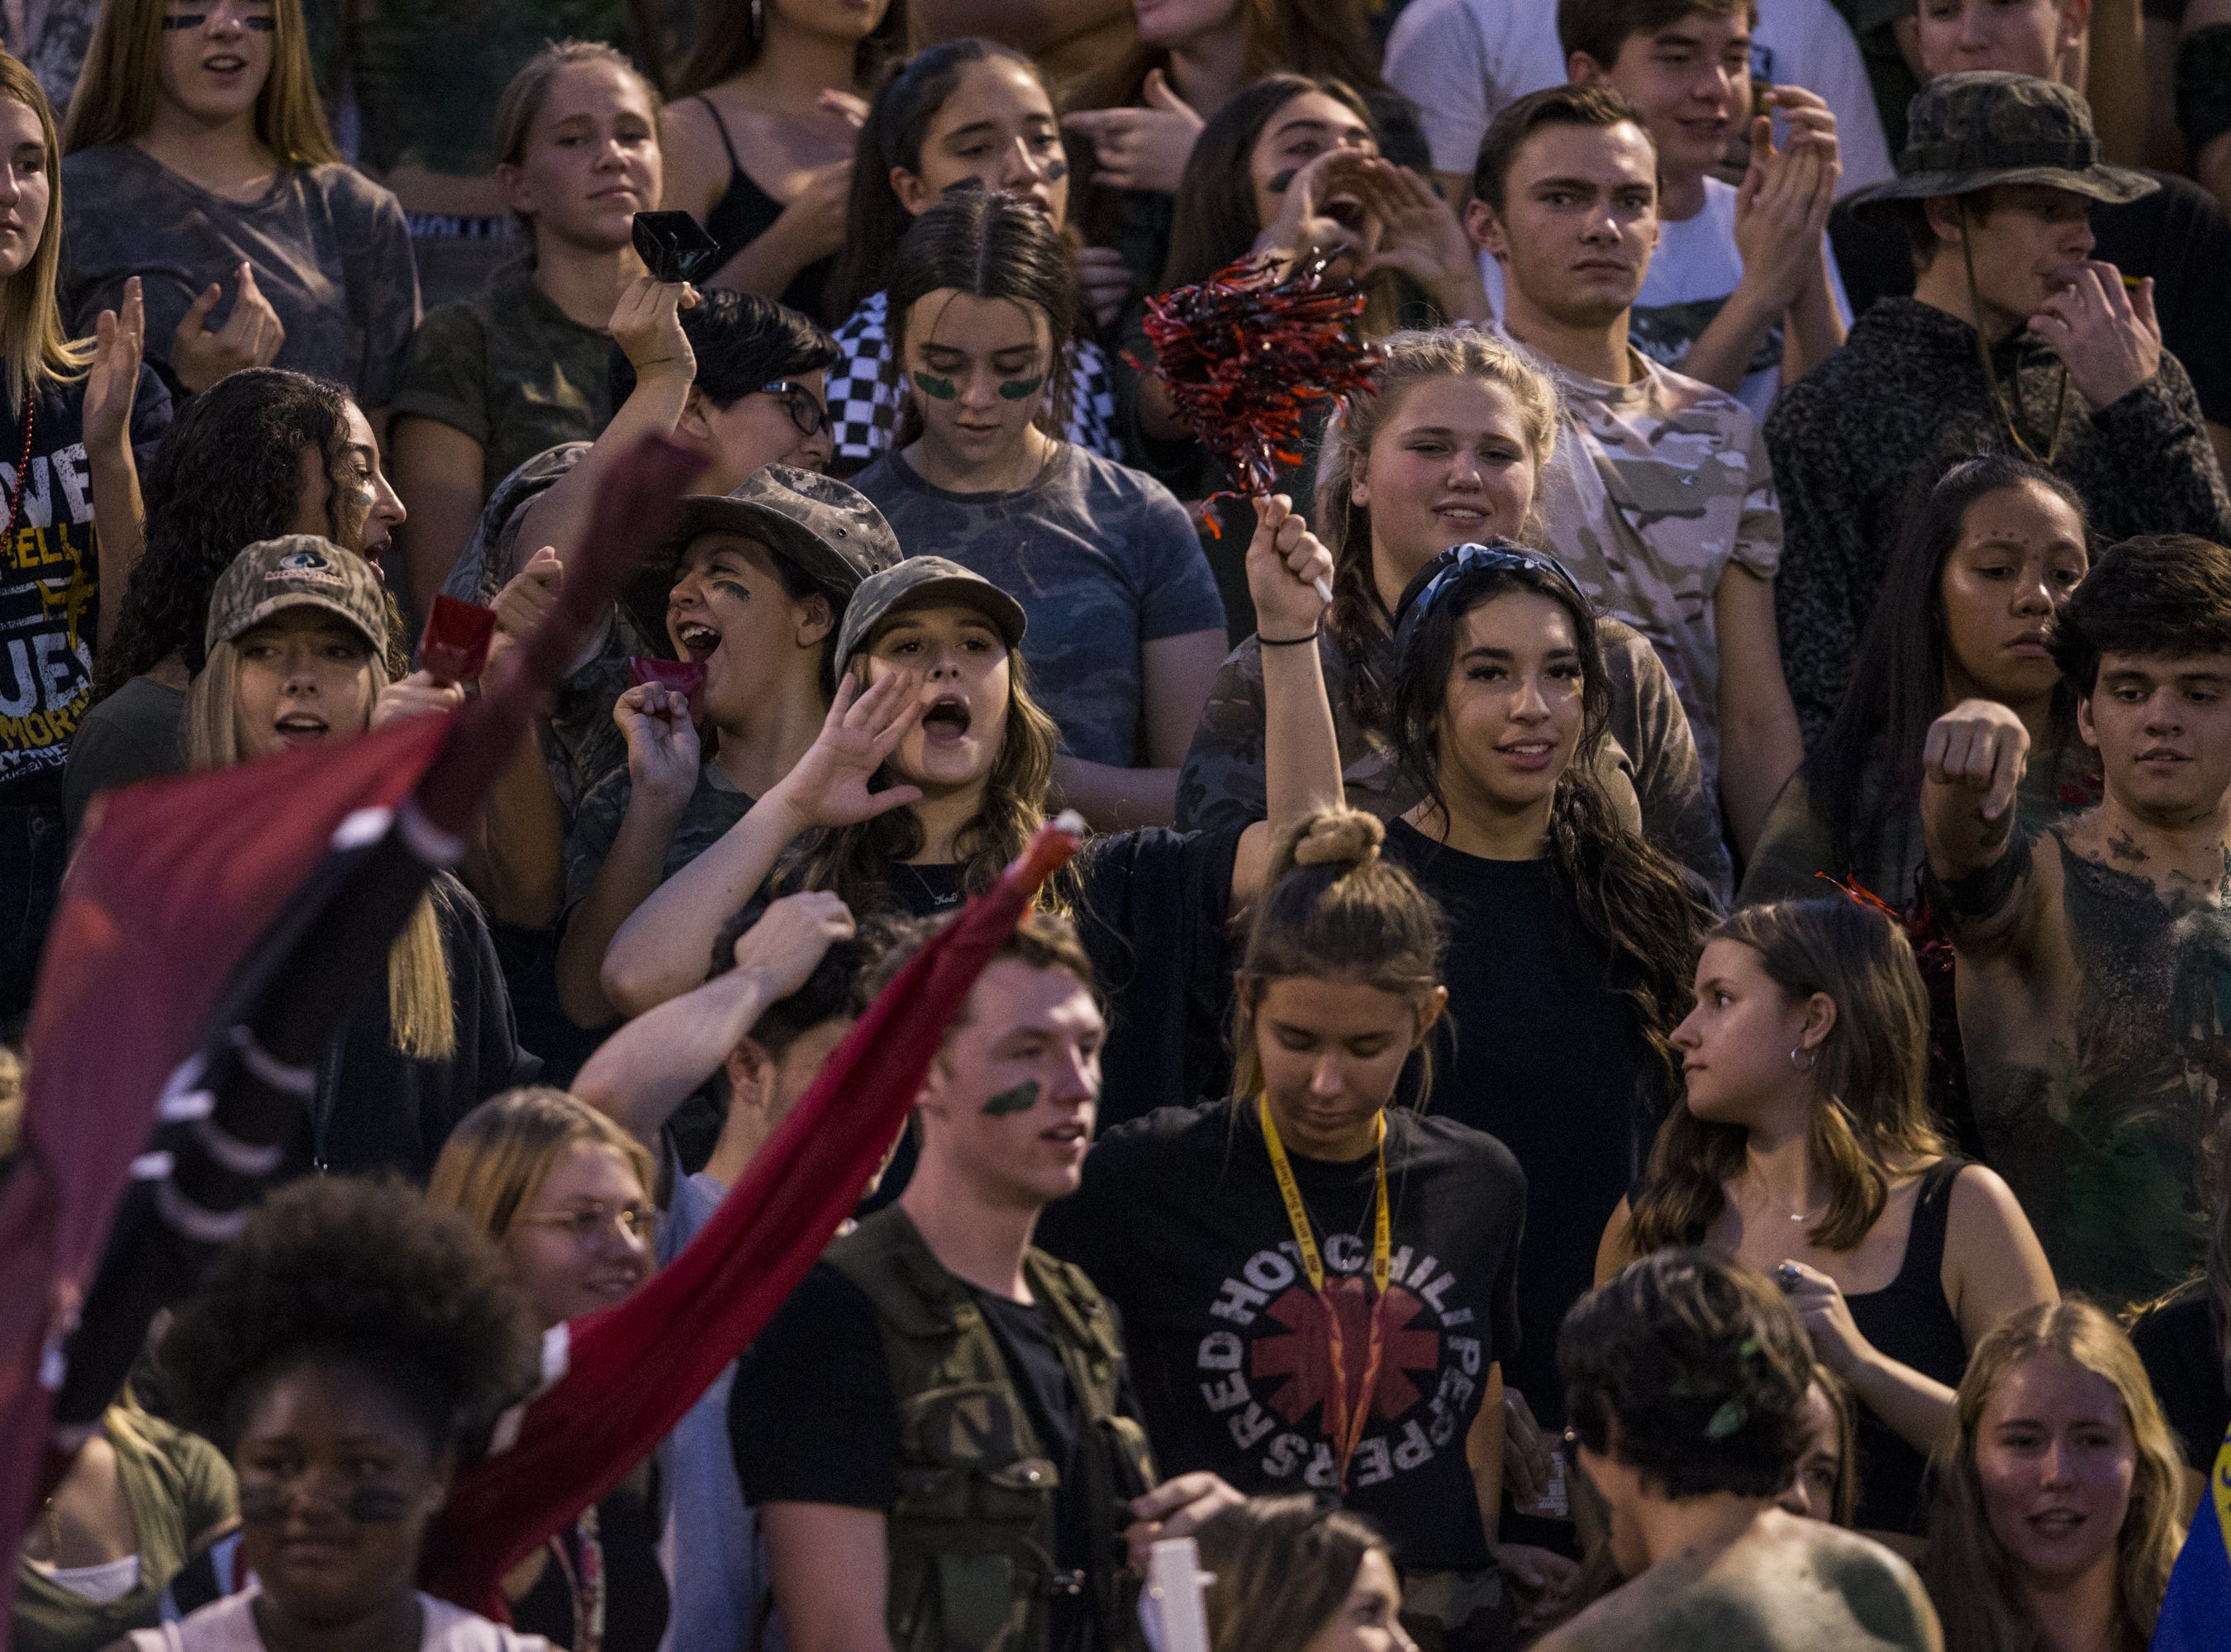 Desert Ridge fans cheer before the game against Liberty on Friday, Sept. 7, 2018, at Desert Ridge High School in Mesa, Ariz.  #azhsfb